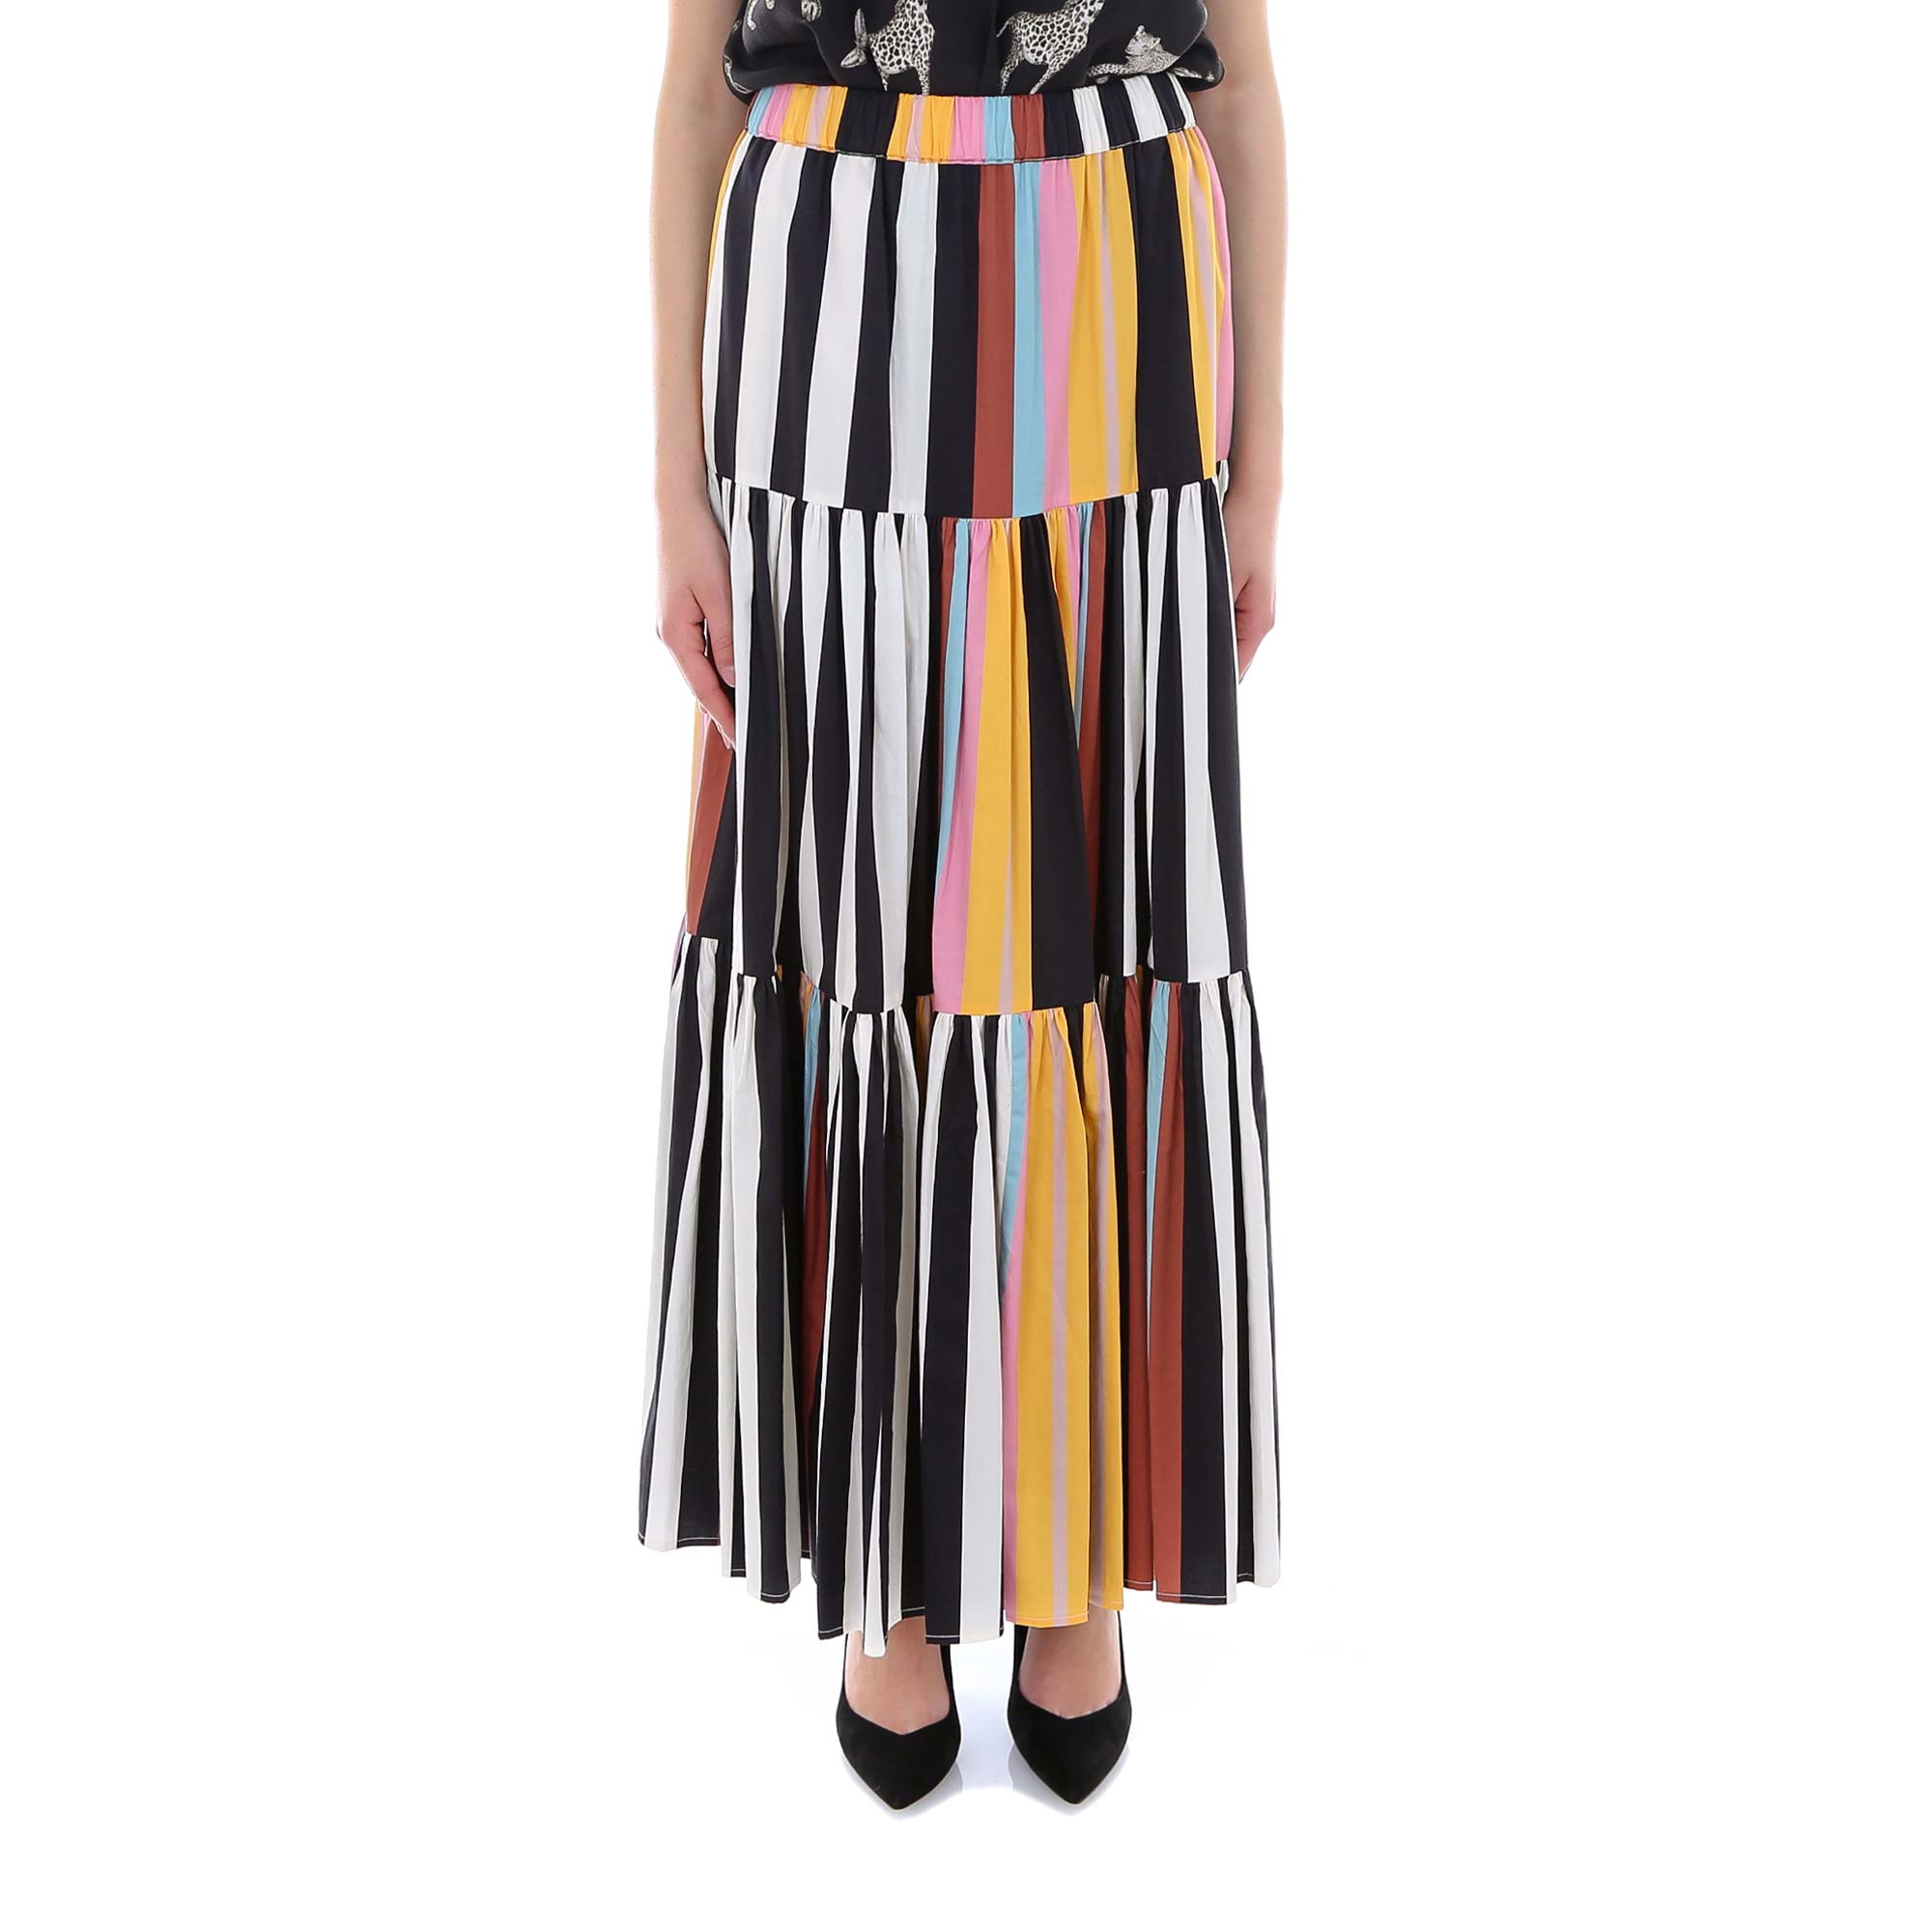 Tory Burch Skirts TORY BURCH STRIPED PANELLED SKIRT